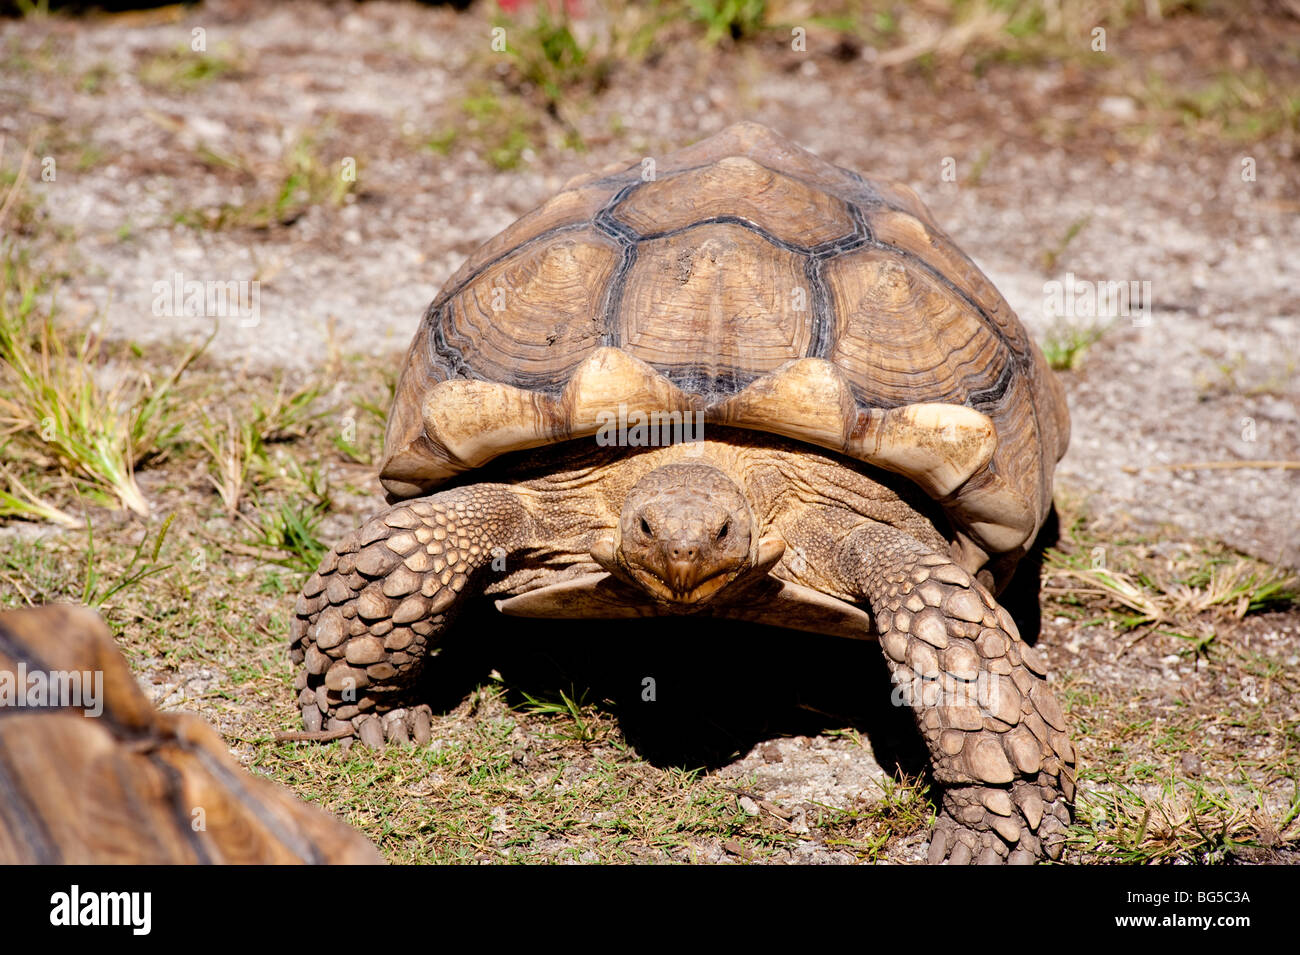 Large Tortoise walking in grassy area Stock Photo